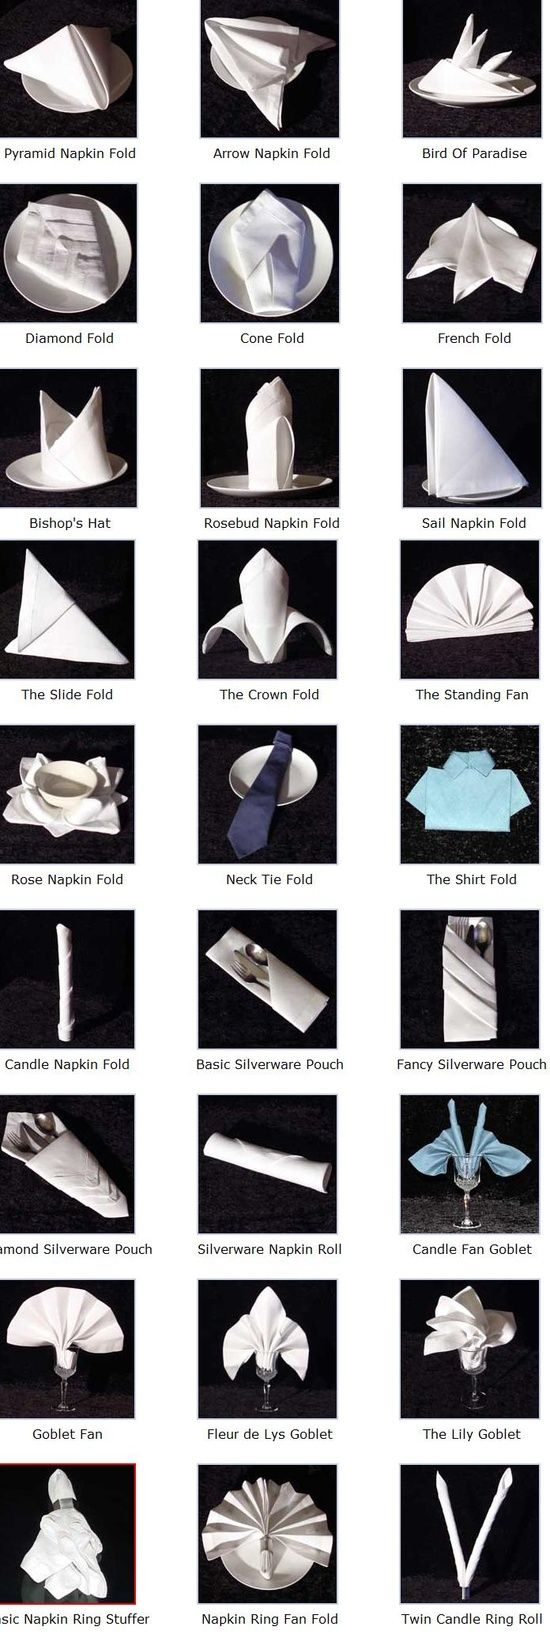 STEP BY STEP ON NAPKIN DESIGN FOLDING